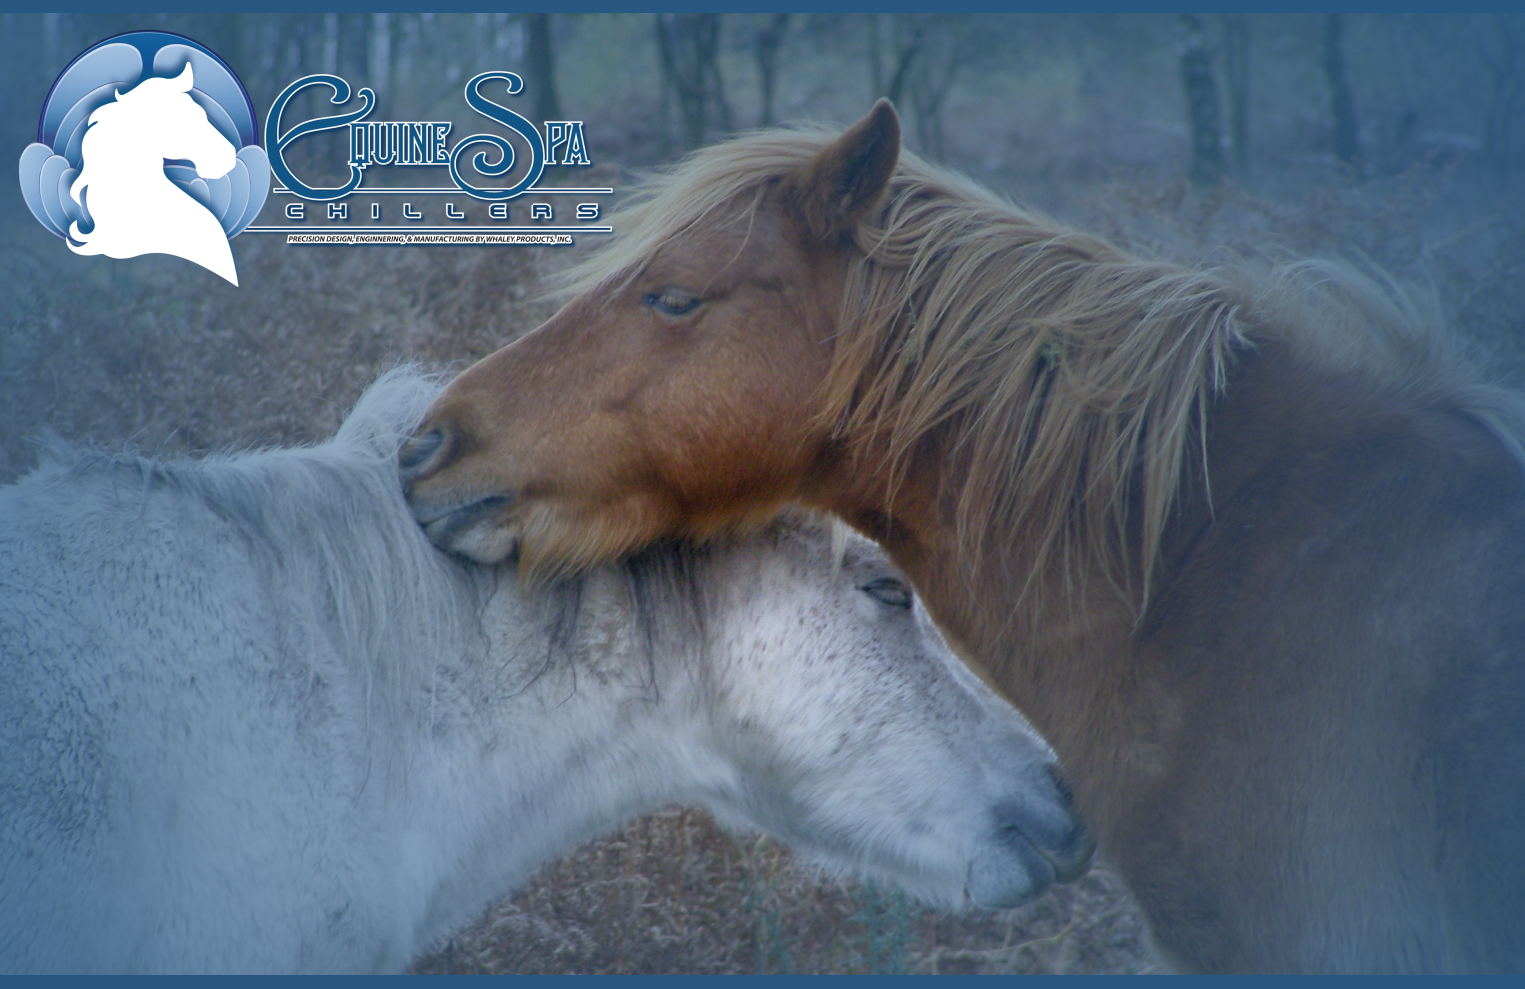 Equine physical therapy - Equine Physical Therapist School Regulations Are Established By The State One State May Require A Doctor S Veterinary Degree And Another State May Require